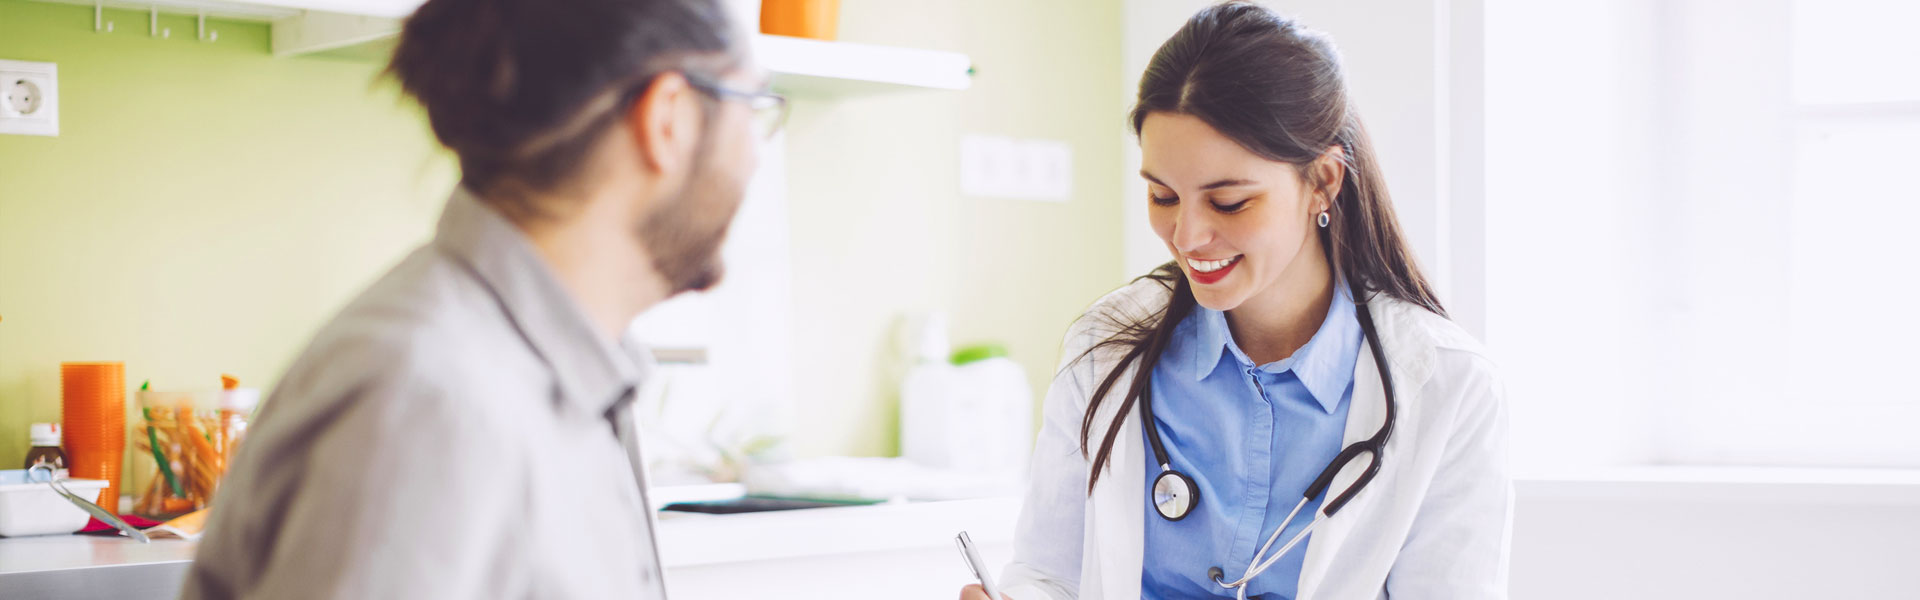 doctor with female nurse